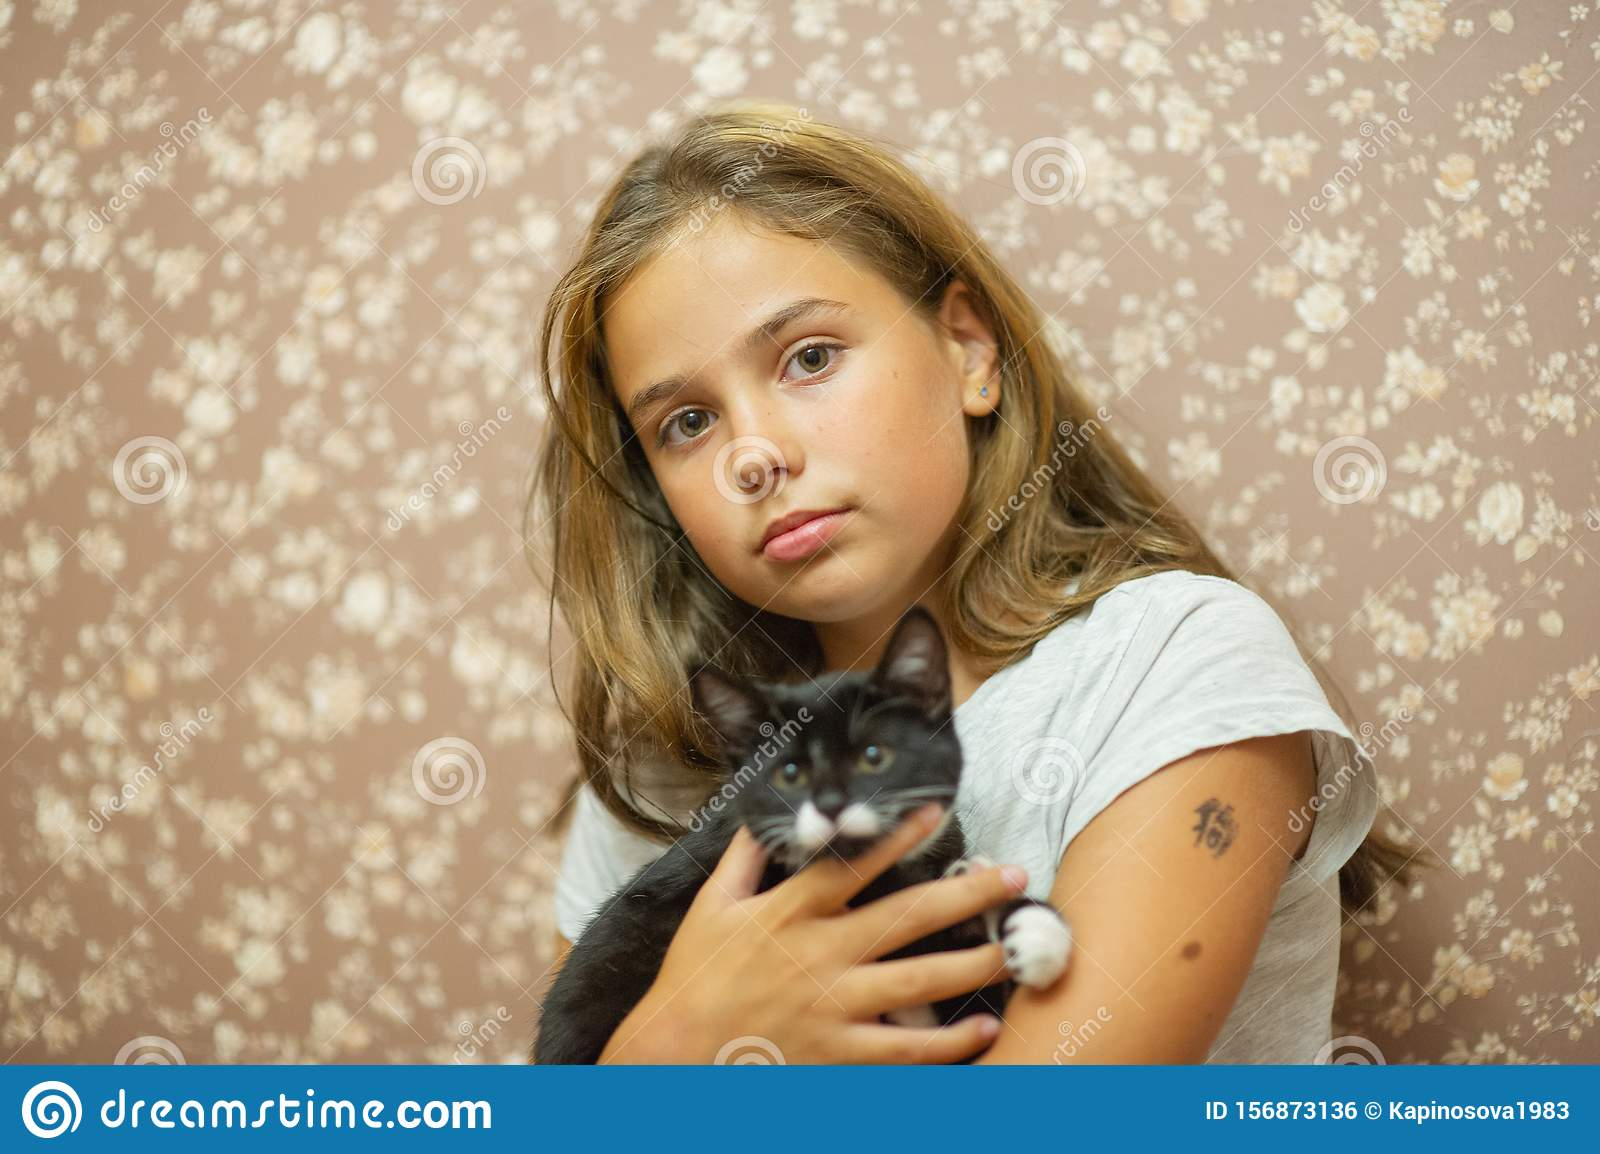 Girl 10 Years Old And A Black And White Kitten Stock Photo Image Of Care Nature 156873136